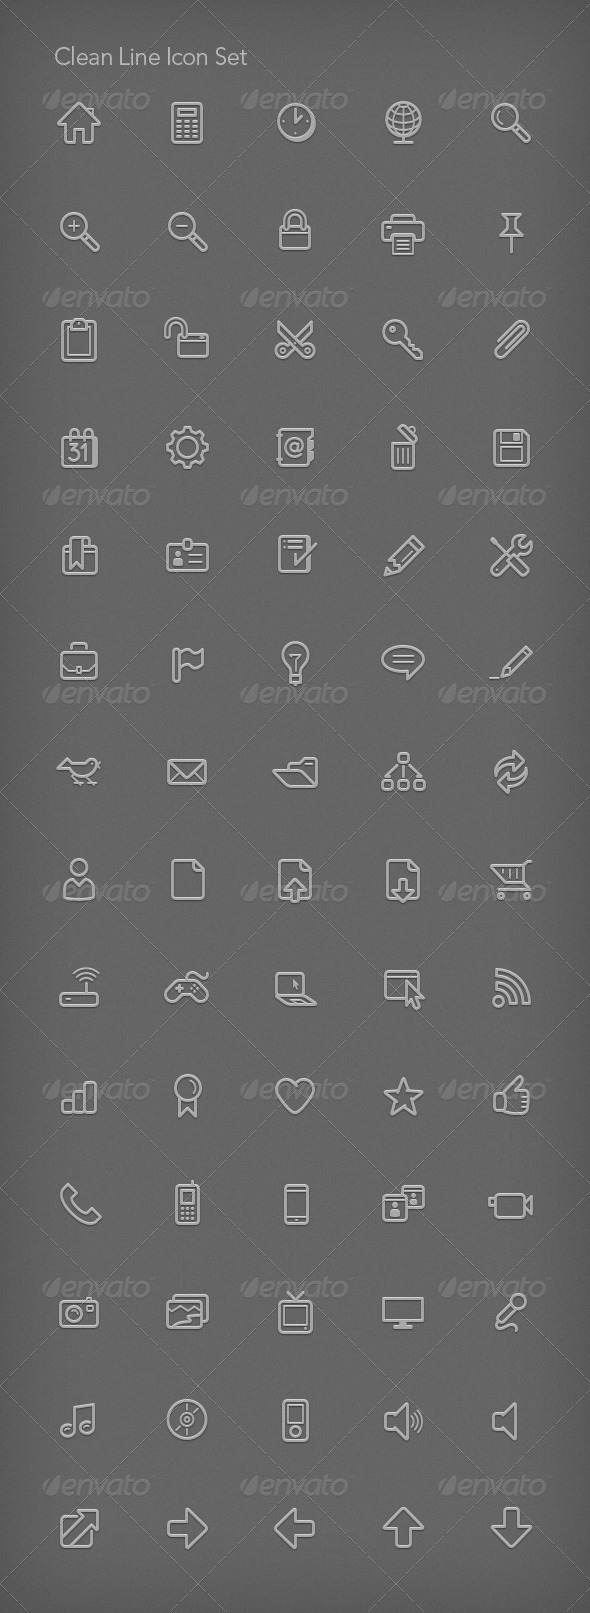 Clean Line Icon Set - Web Icons